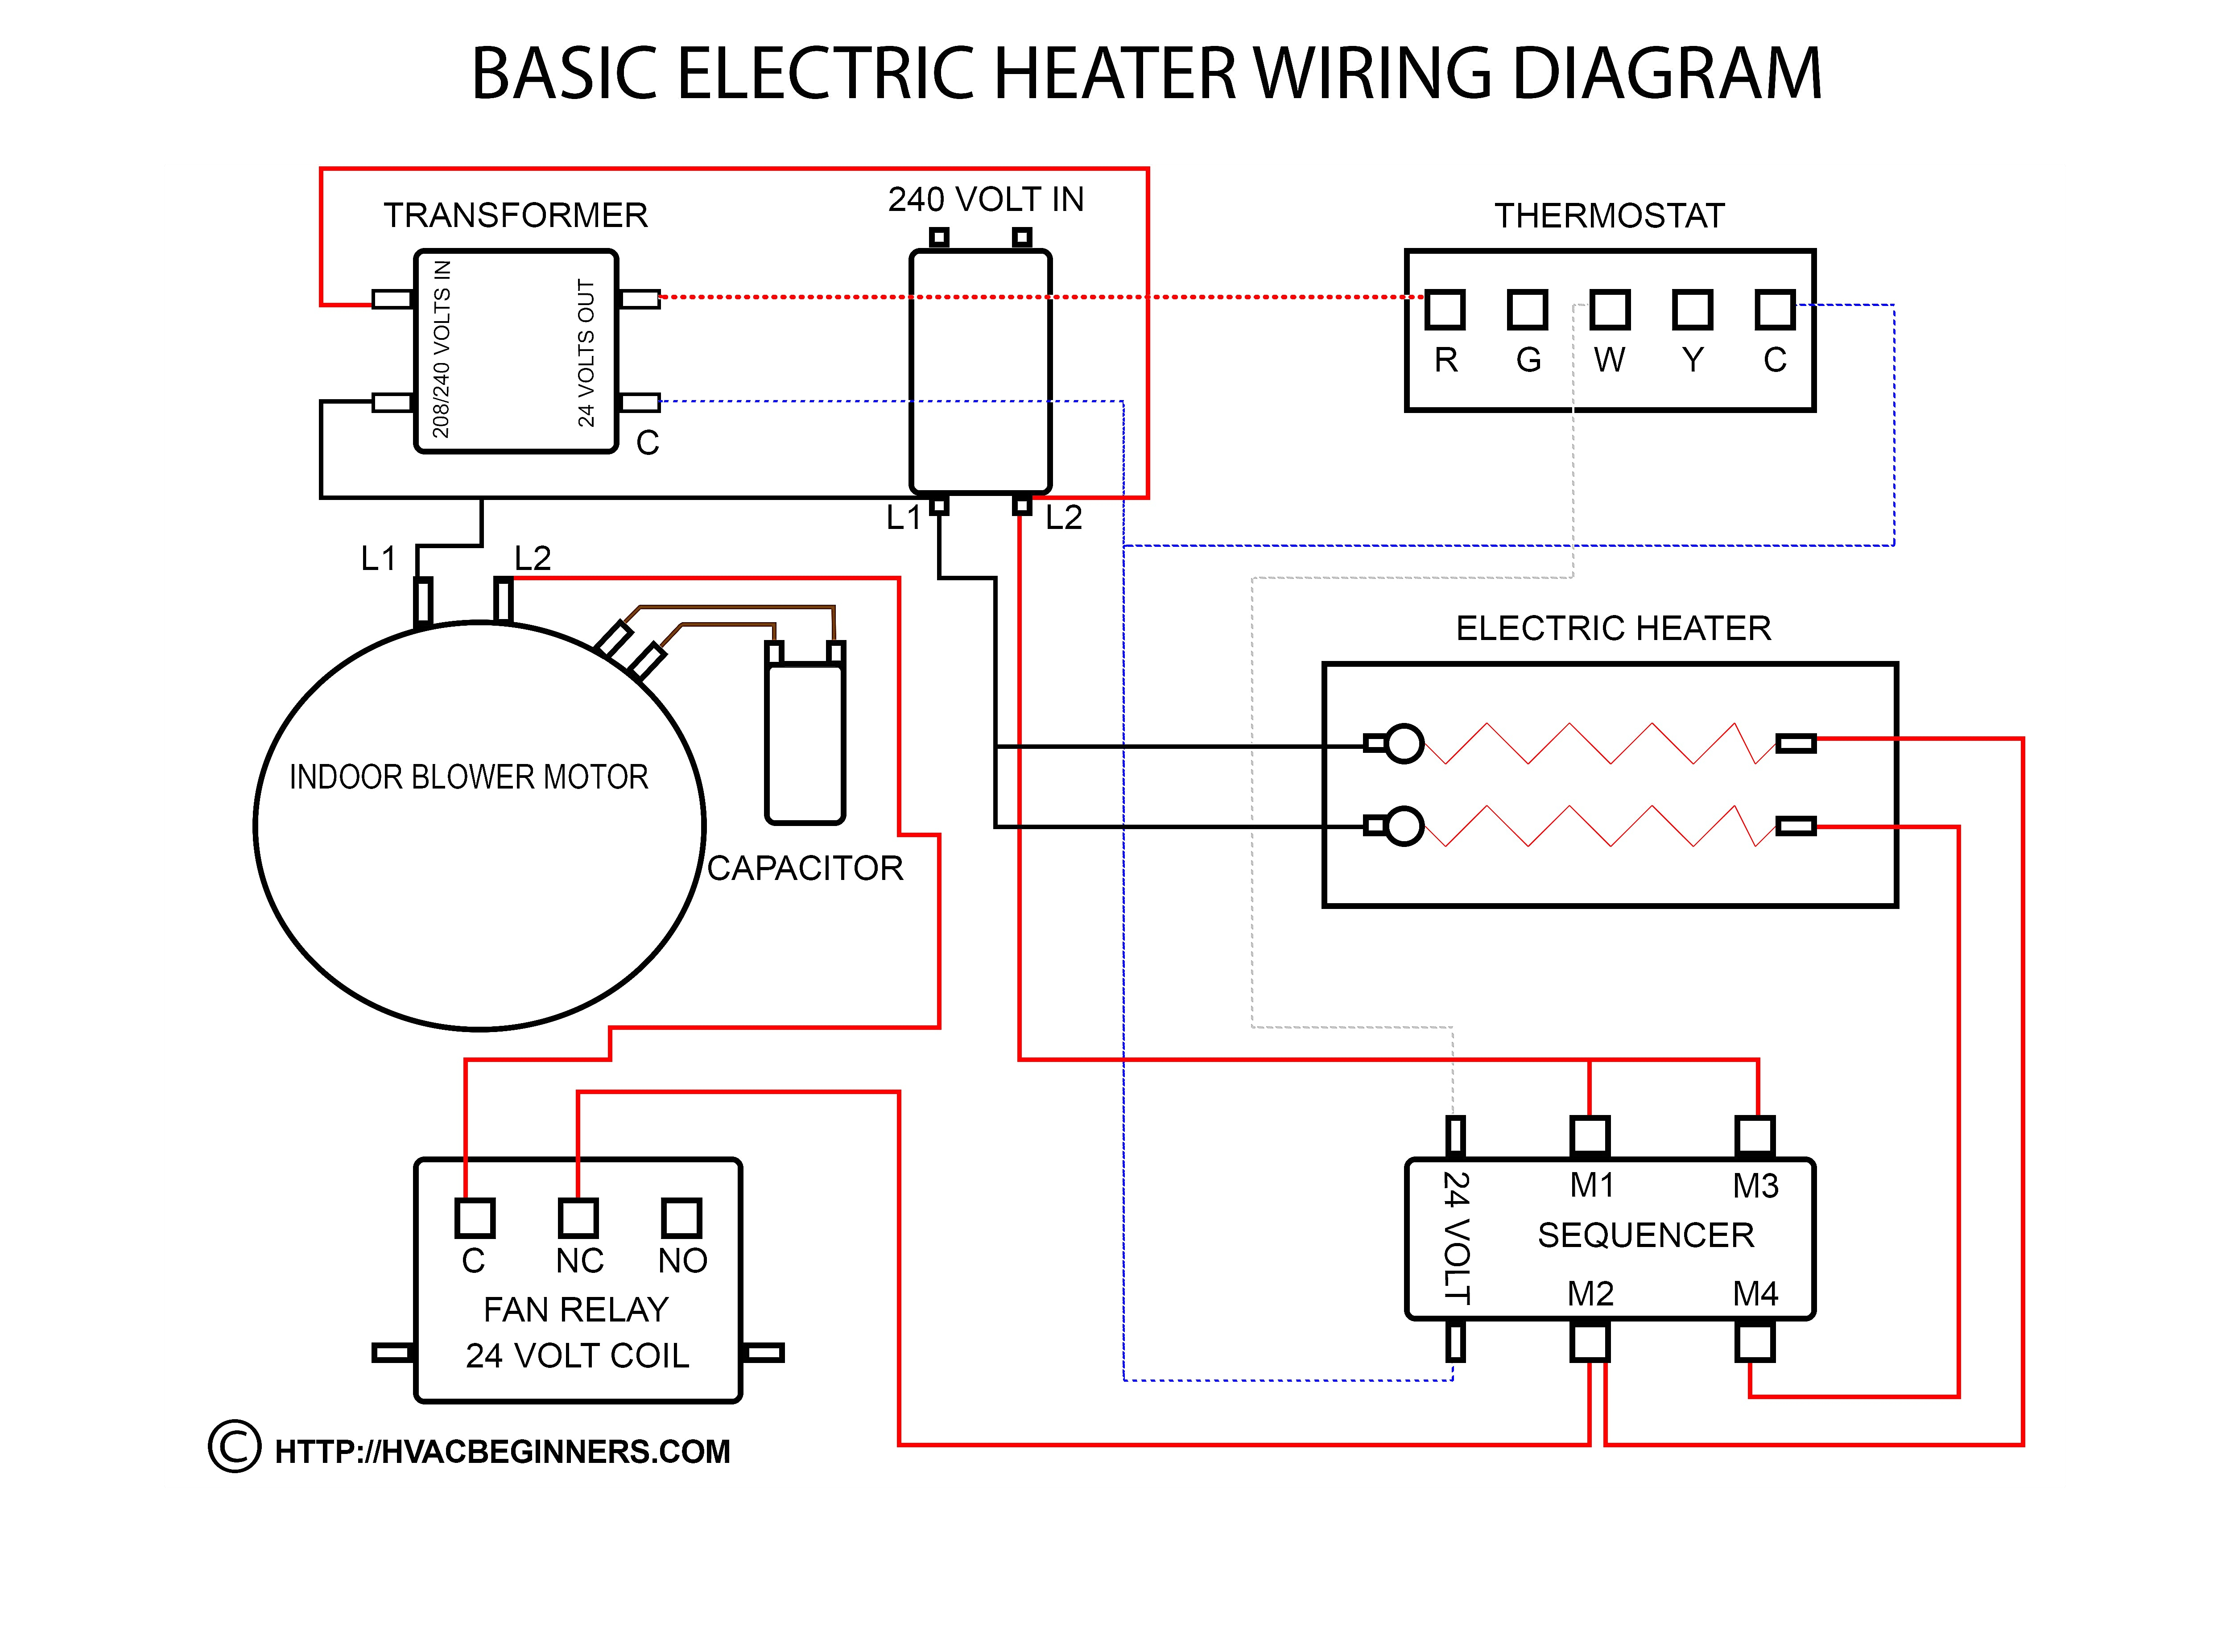 wiring diagram for thermostat to furnace Download-Gas Furnace thermostat Wiring Diagram Rheem thermostat Wiring Diagram Inspirational Gas Furnace Wiring Diagram Excellent 15-l